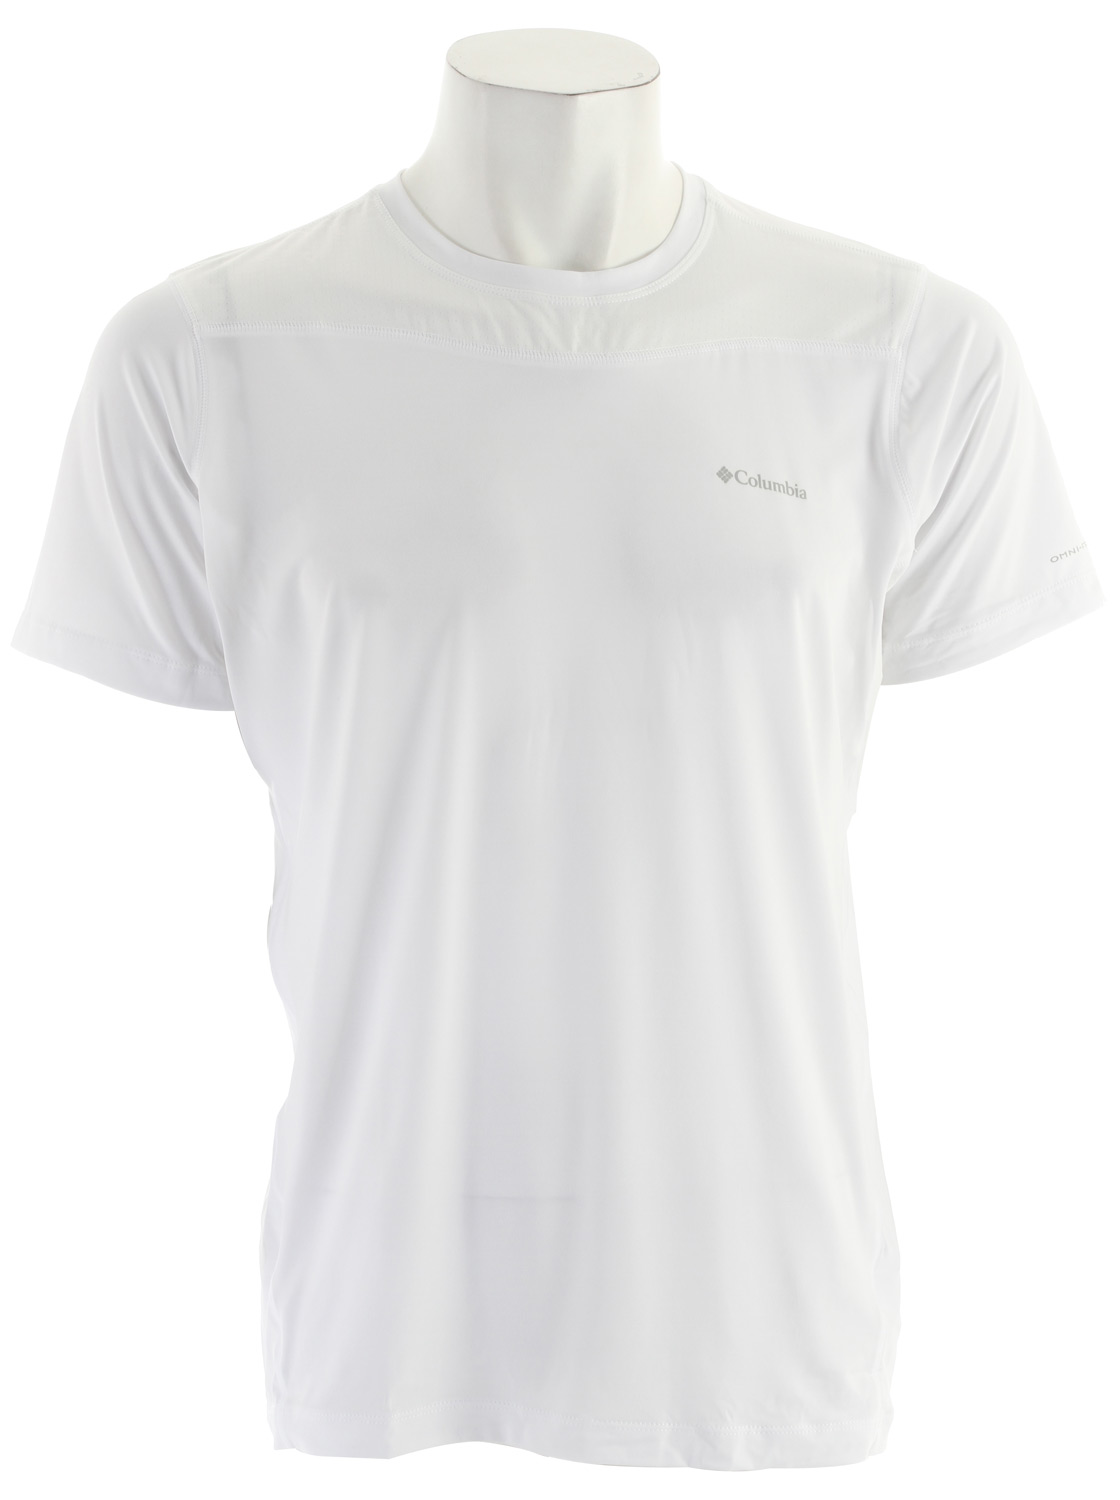 Columbia Mens Base Layer Lightweight S/S Top is an awesome base layer top for hot summer days or aerobic training workouts.  The 4-way stretch ability makes any activity comfortable. Besides the cooling advantages that the Omni-Freeze ICE advanced cooling system provides with this top, the Lightweight S/S top provides protection against chafing and irritation during your active movement activities due to the anti-perspiration features of the Omni-Wick design. Additional benefits include the ergonomic seaming, it is antimicrobial and it is designed for FIT Performance.  FABRIC 90% polyester/10% elastane.   FIT Performance   Omni-Freeze ICE advanced cooling   Omni-Wick   Antimicrobial   4-way comfort stretch   Ergonomic seaming - $32.95